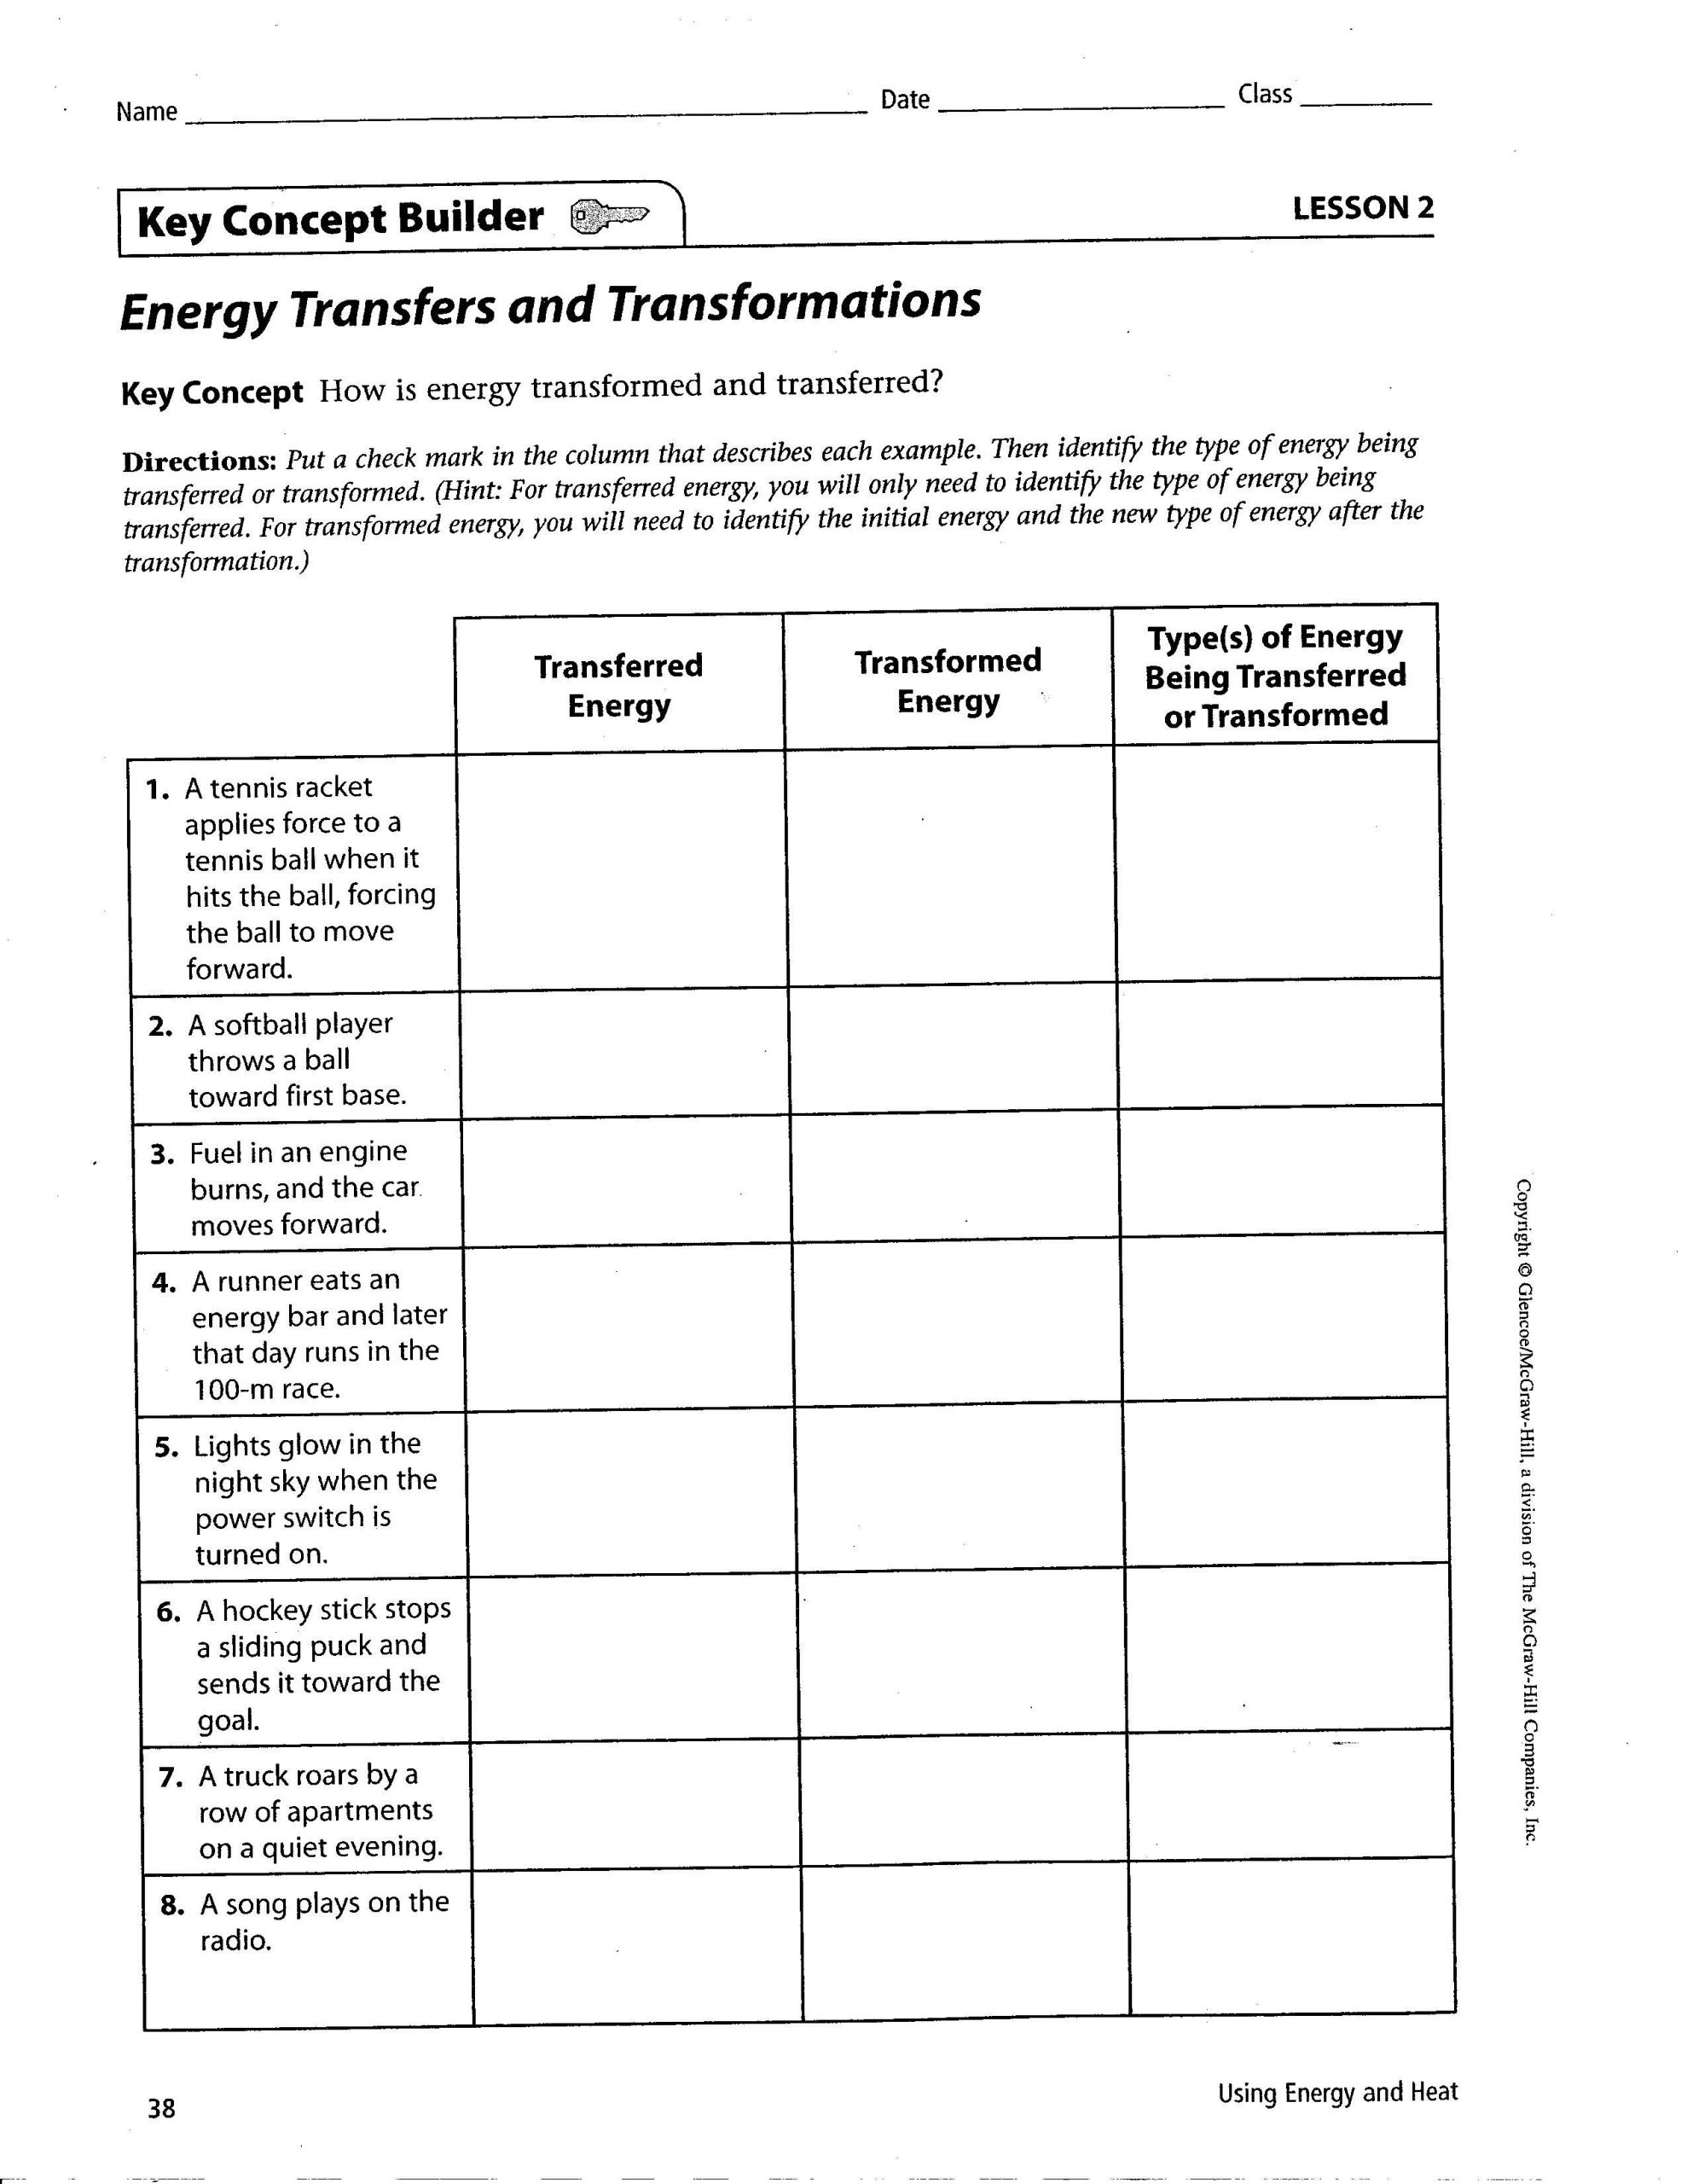 Triple Beam Balance Practice Worksheet assignments Mr foreman S 7th and 8th Grade Classes